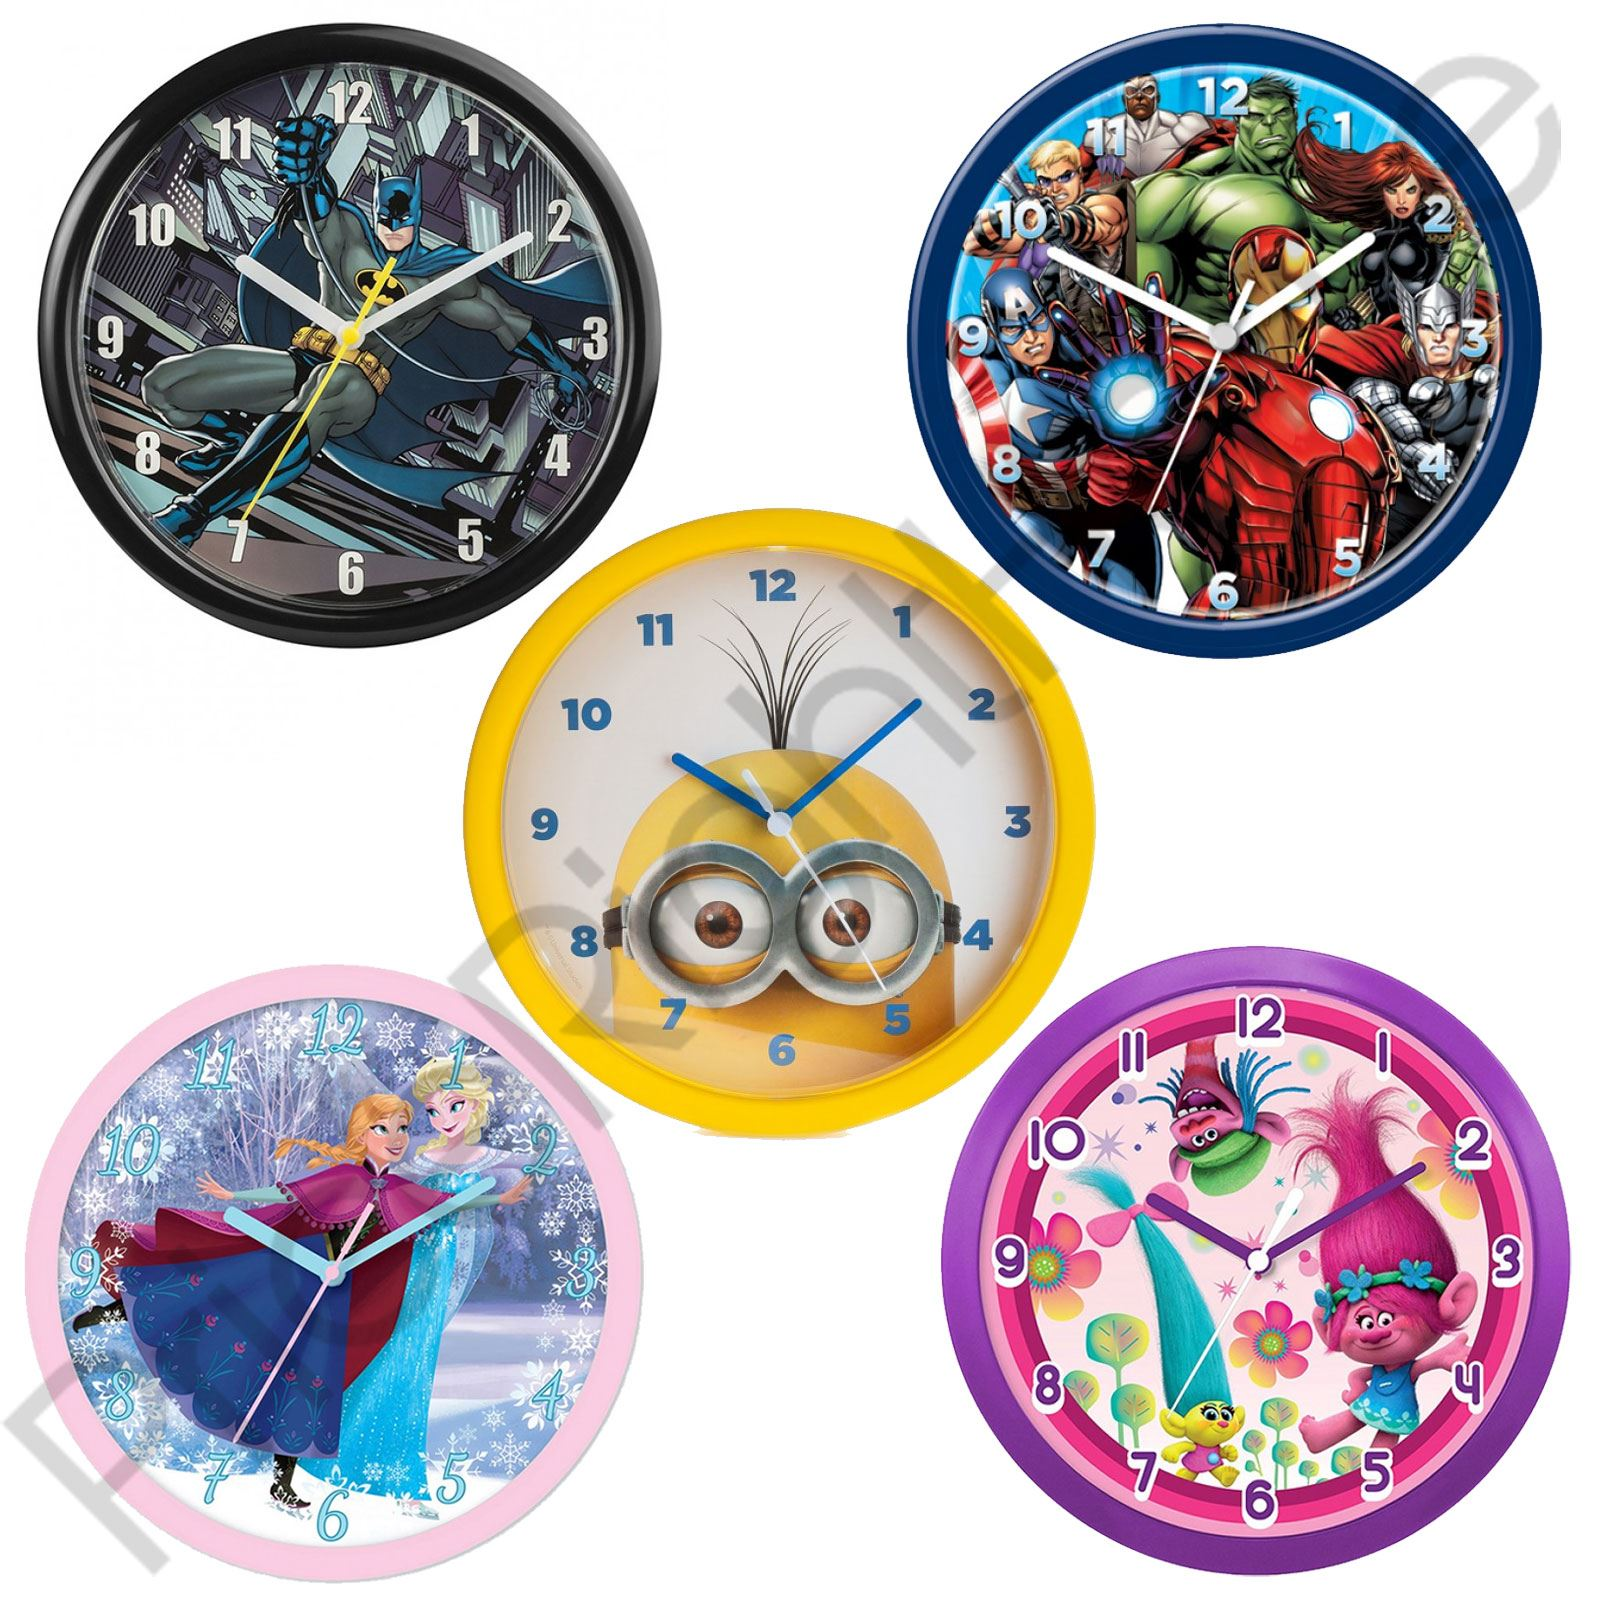 Childrens official character wall clocks spiderman avengers childrens official character wall clocks spiderman avengers batman more amipublicfo Images